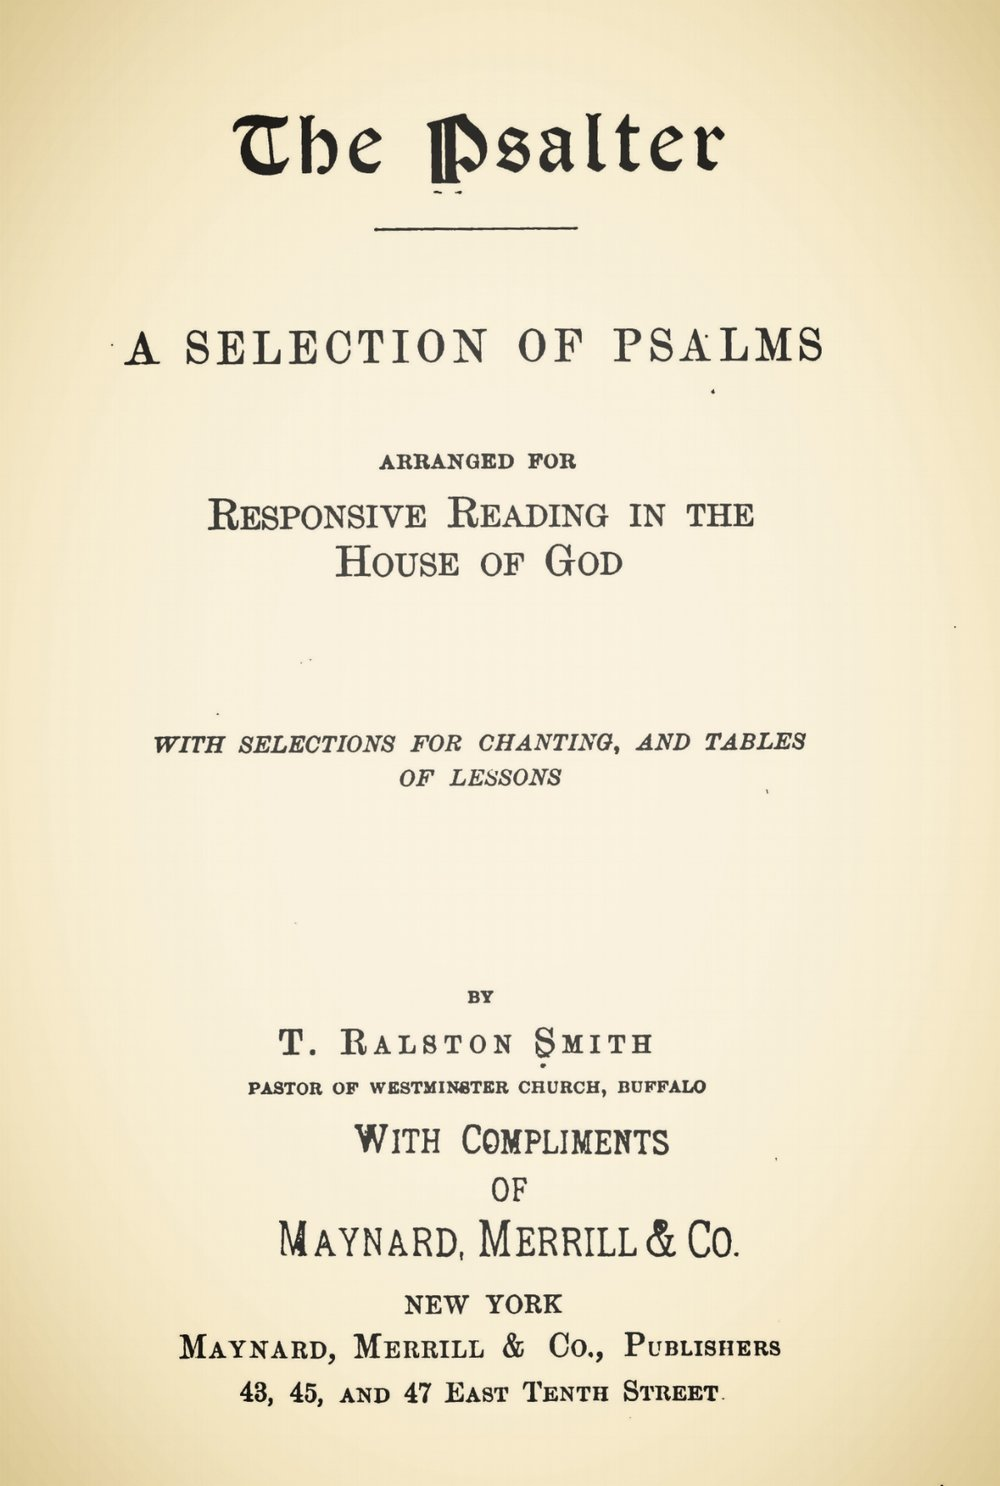 Smith, Thomas Ralston, The Psalter Title Page.jpg